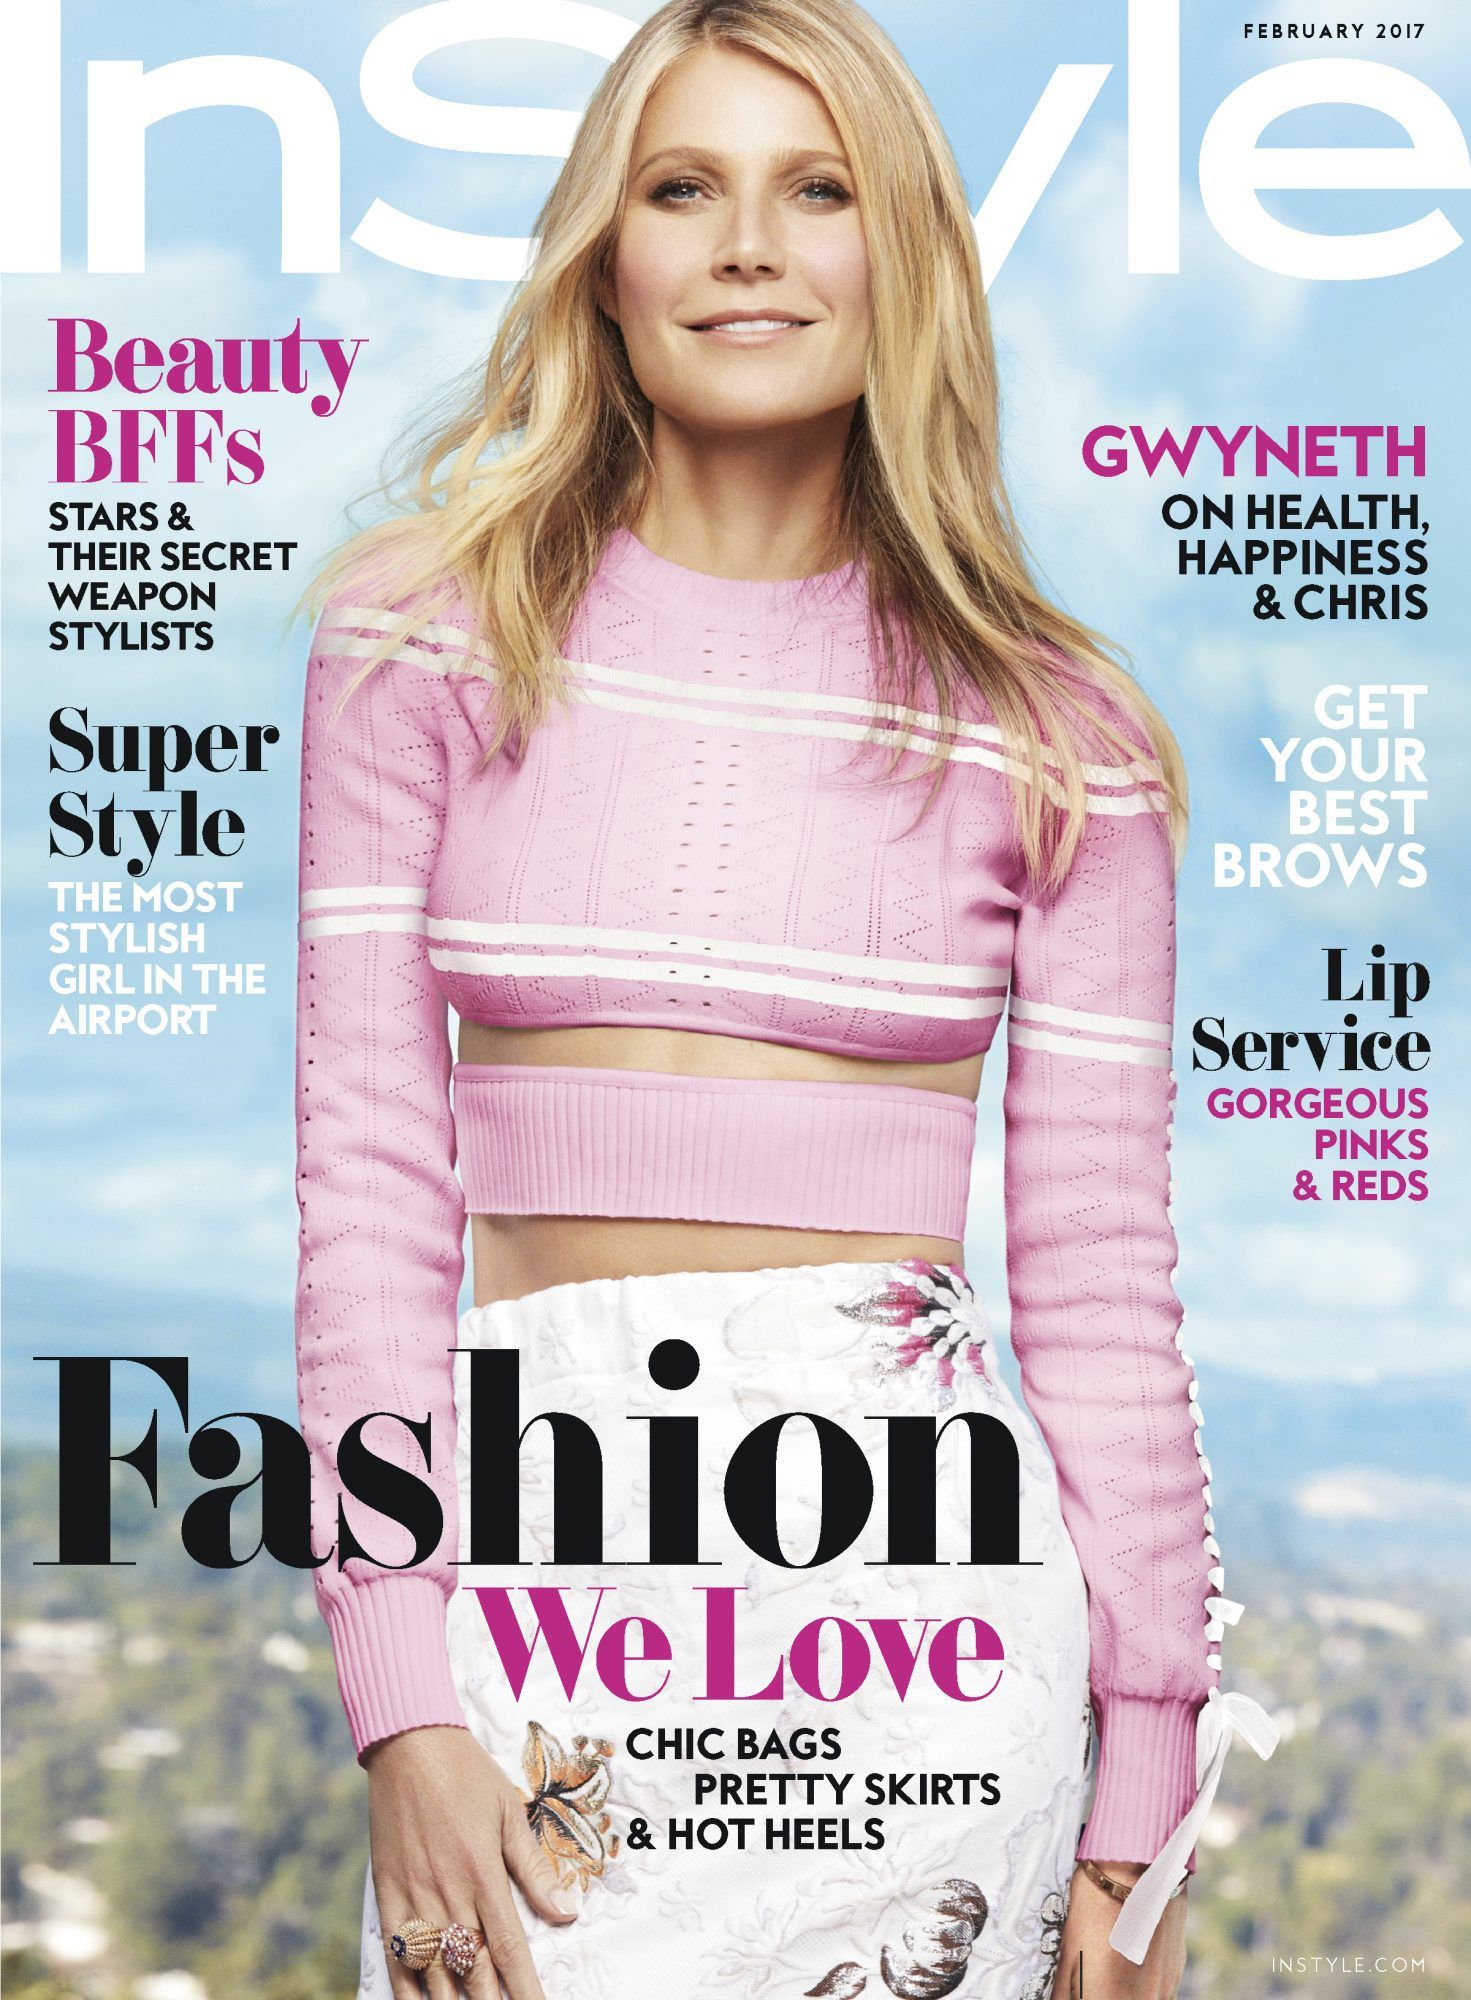 Gwyneth Paltrow InStyle February Cover Story | InStyle.com